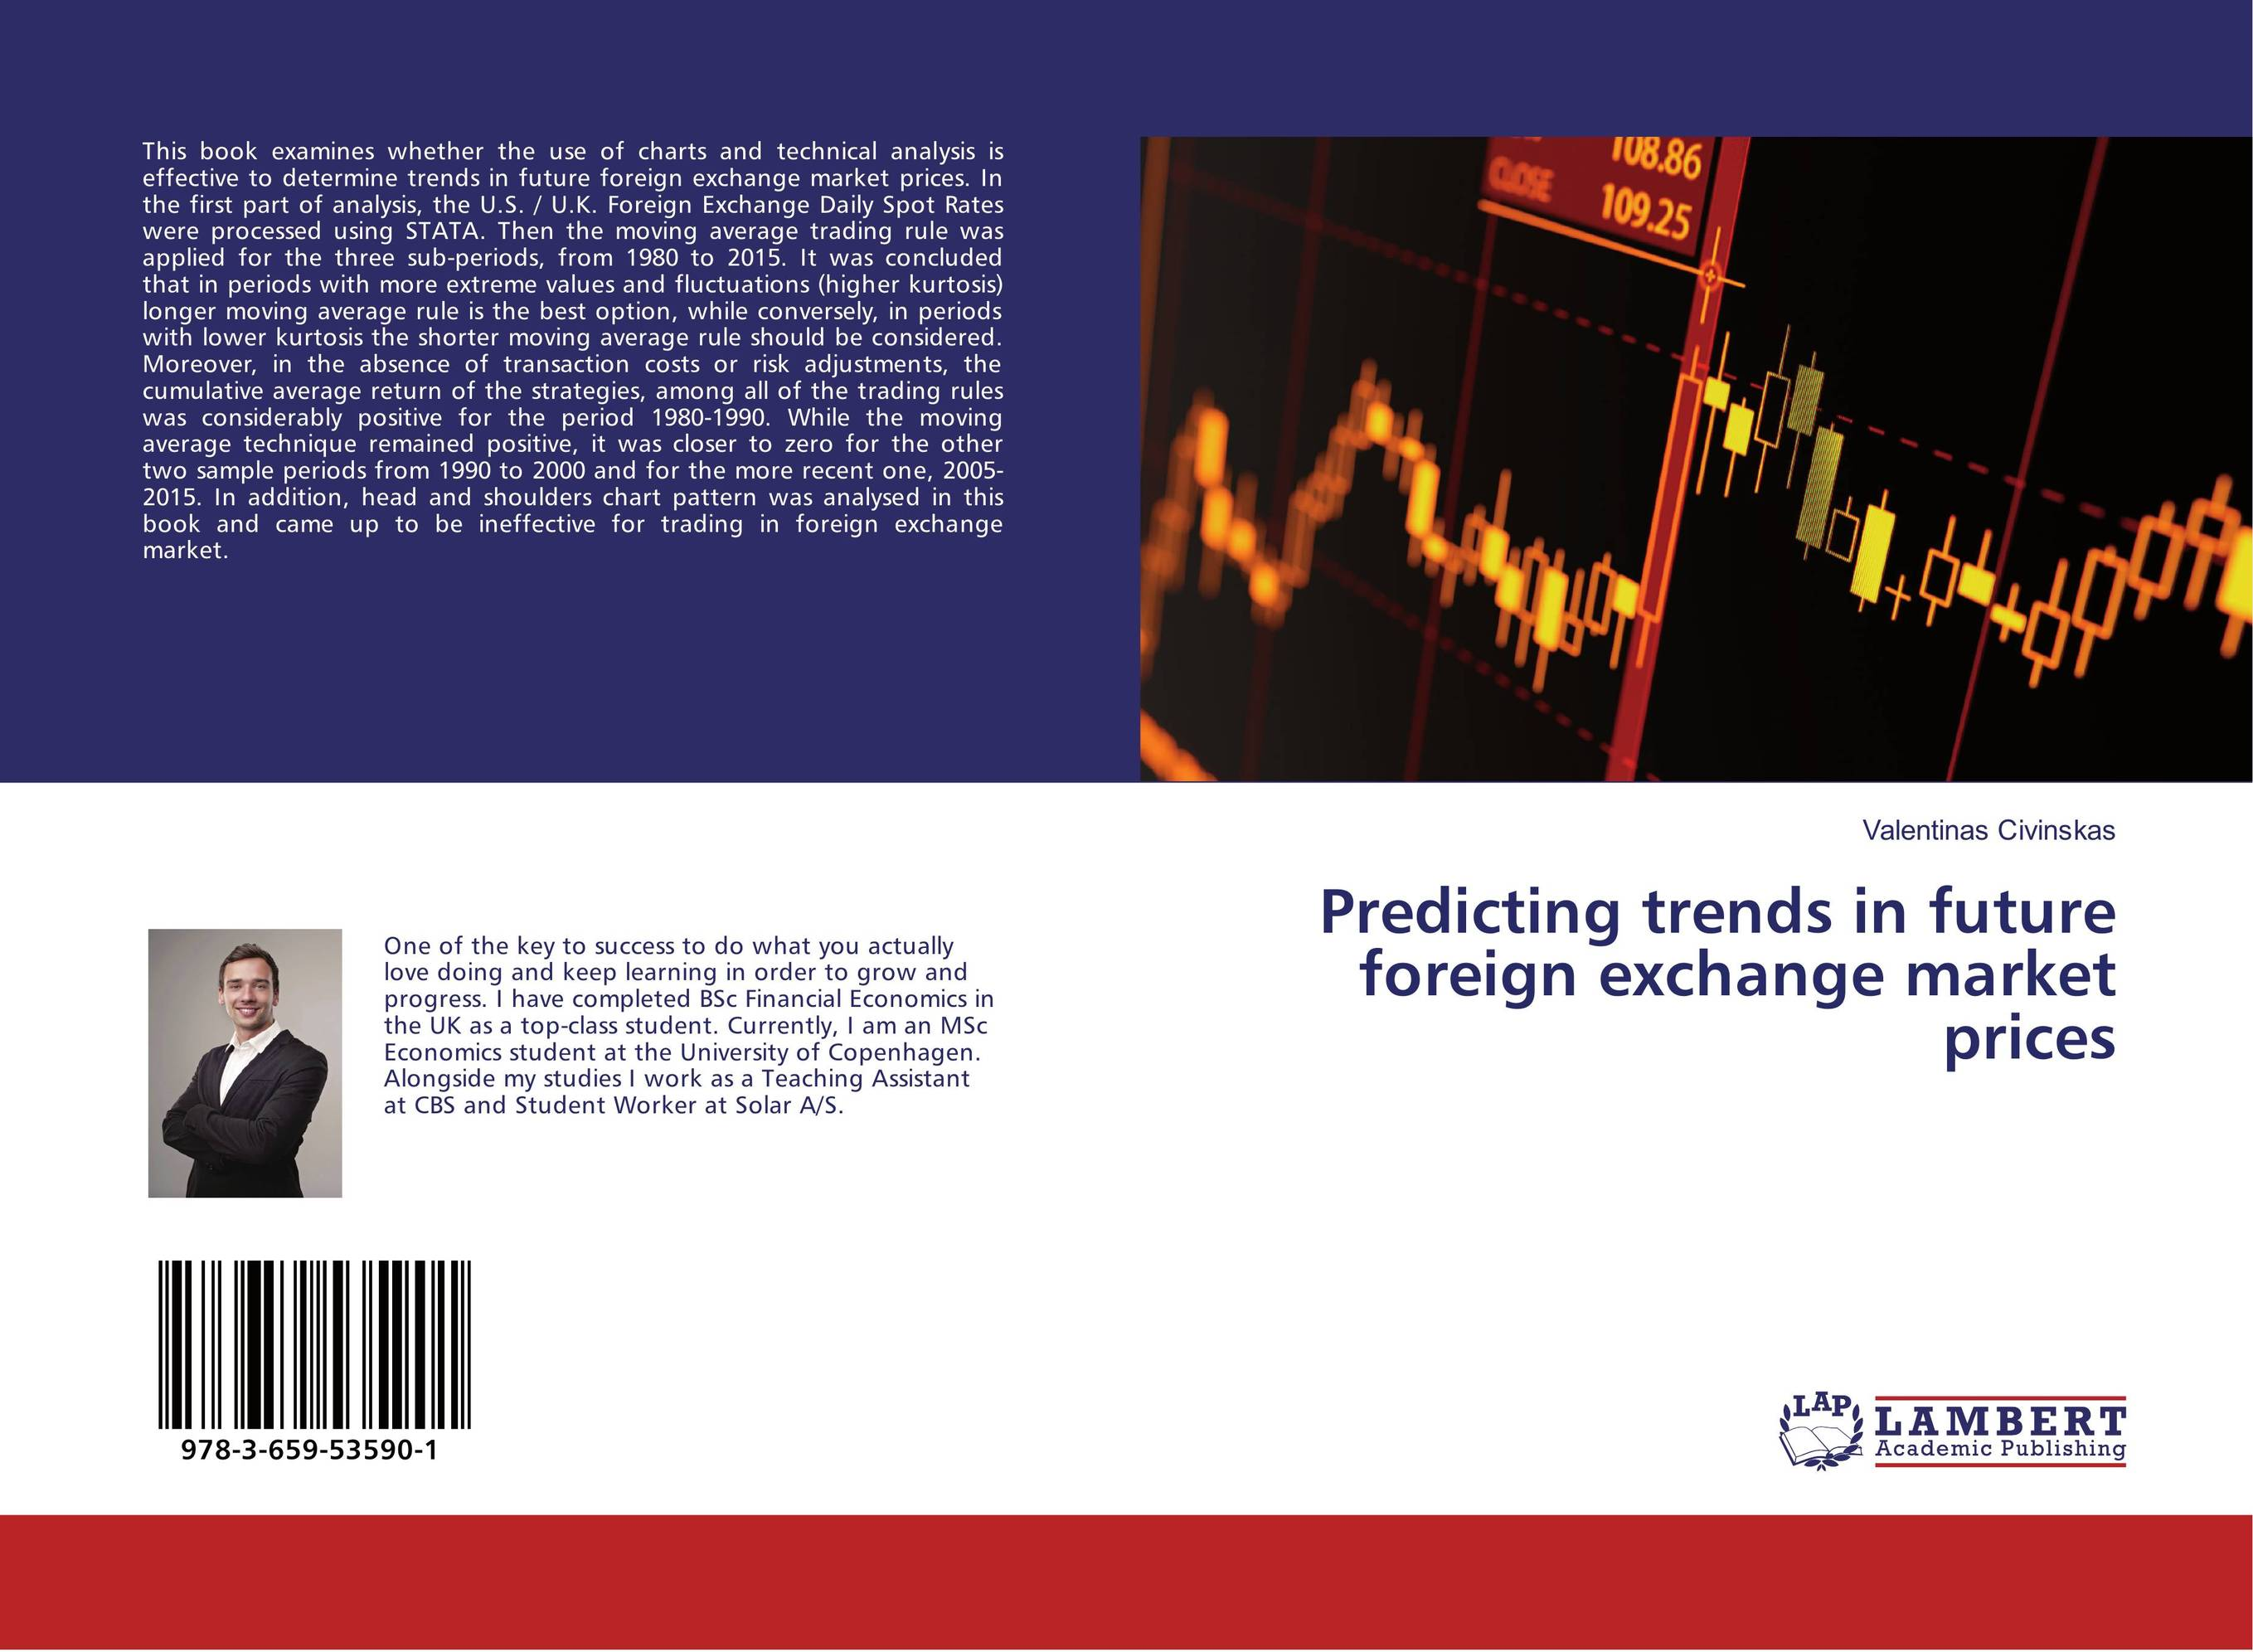 Predicting trends in future foreign exchange market prices predicting trends in future foreign exchange market prices